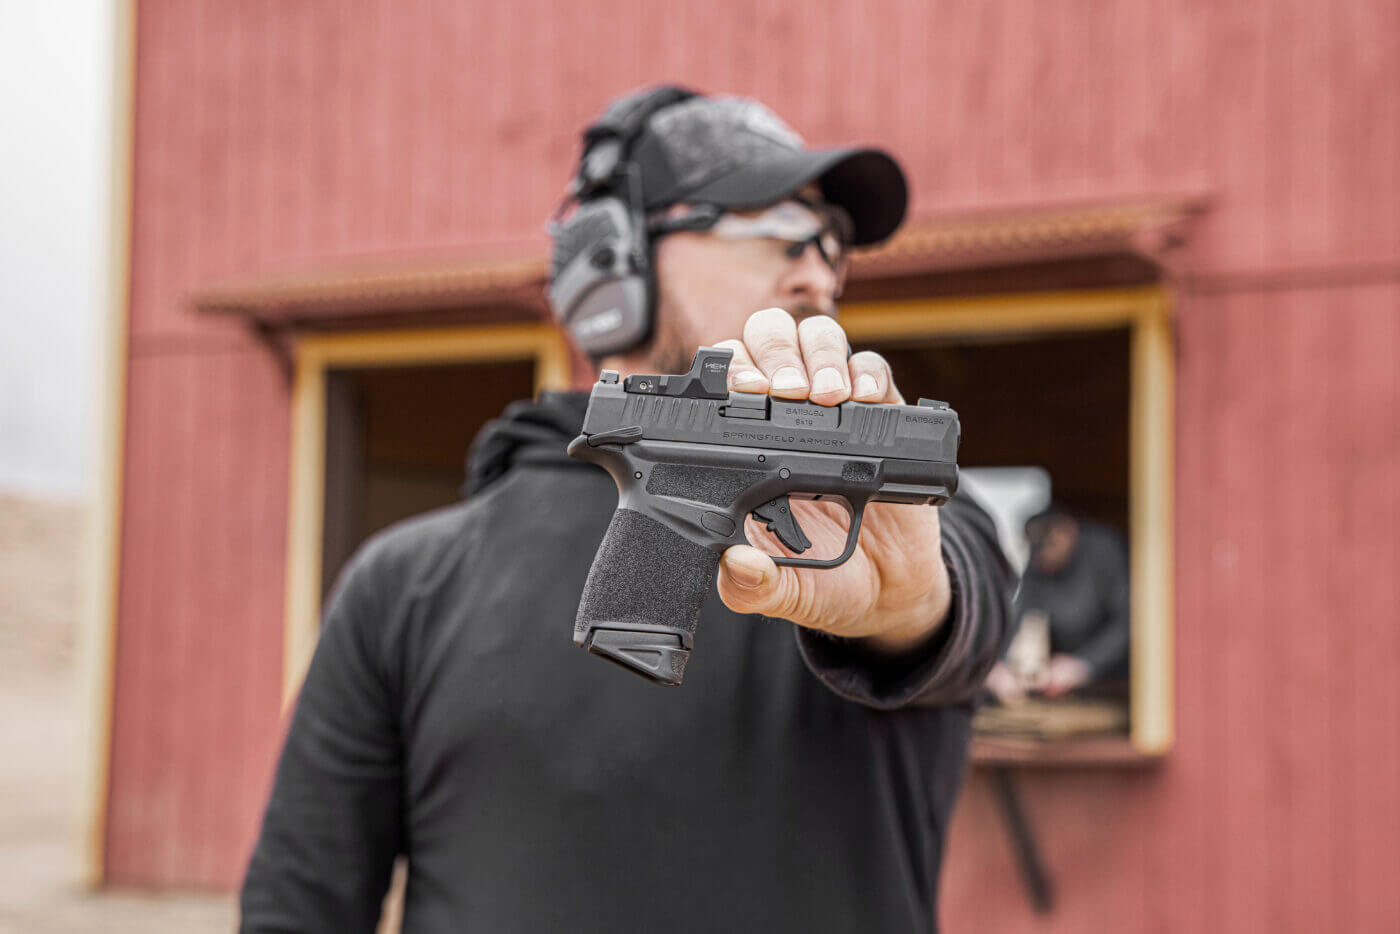 Holding a Springfield Hellcat pistol in front of building